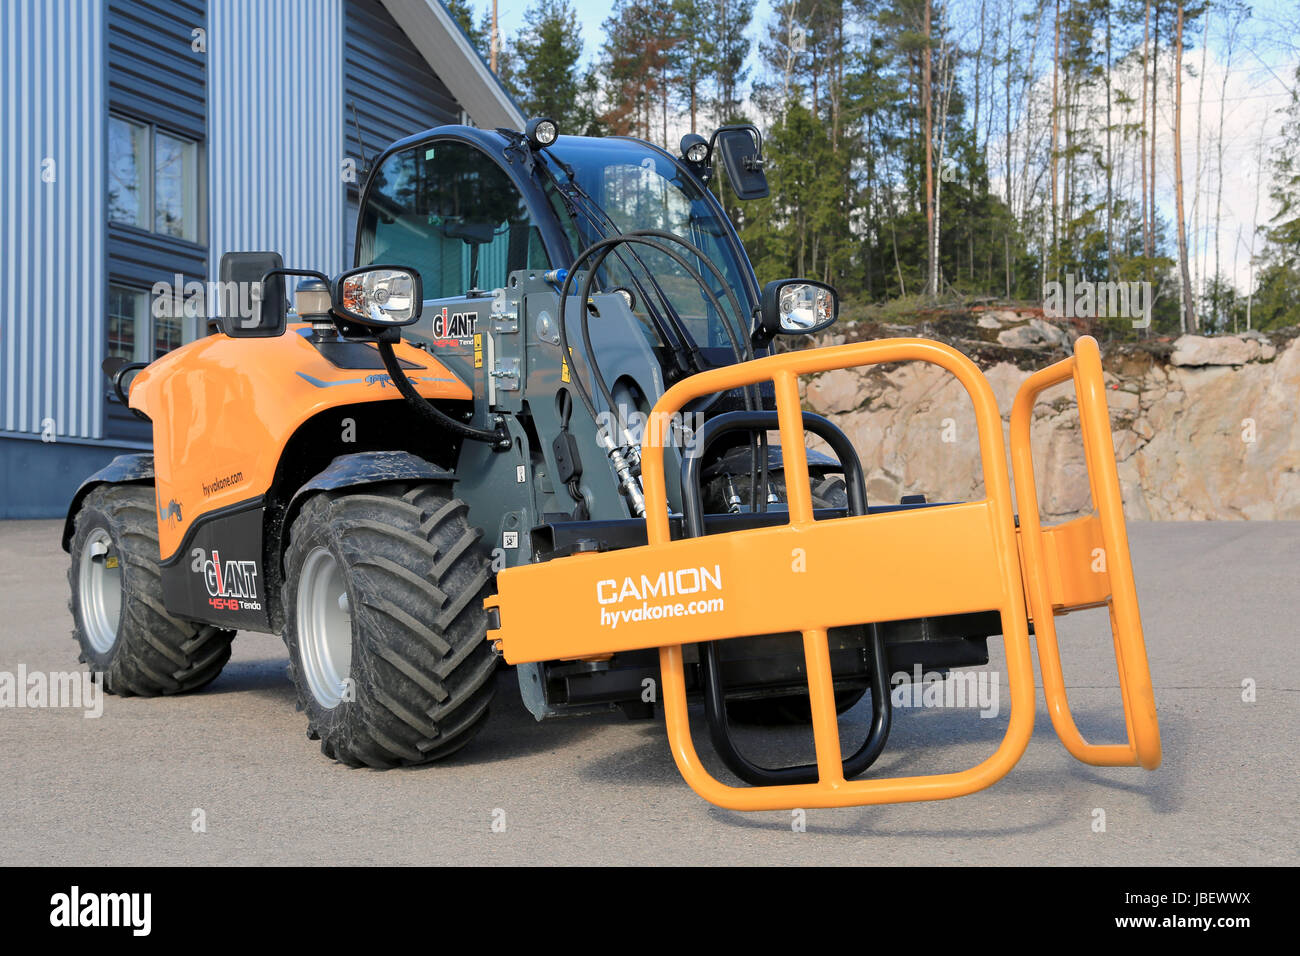 LIETO FINLAND - MARCH 22 2014: Giant 4548 Tendo telehandler with Stock Photo Royalty Free